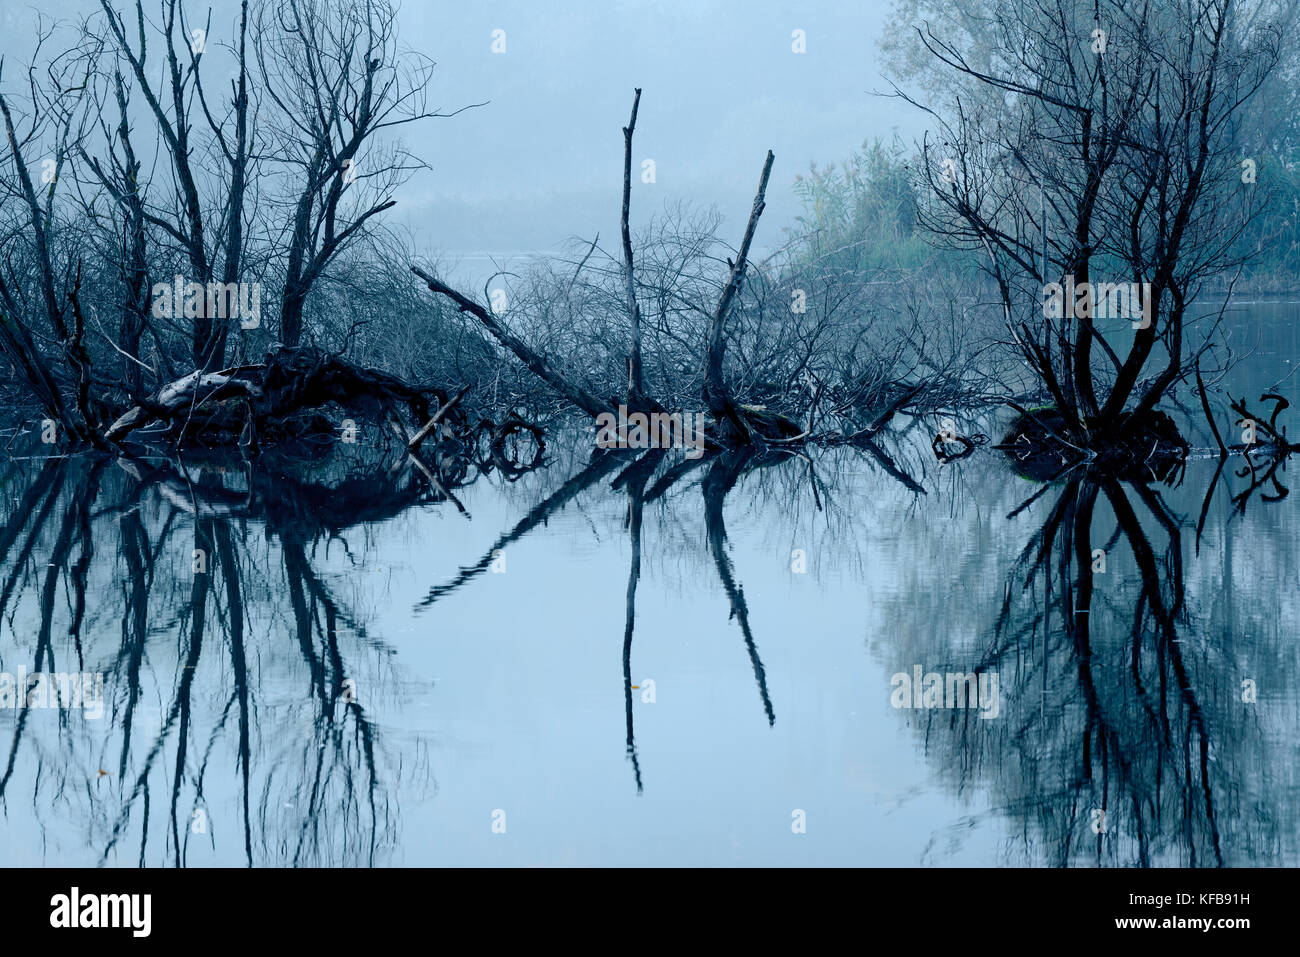 Dried tree branches reflected in the water - Stock Image